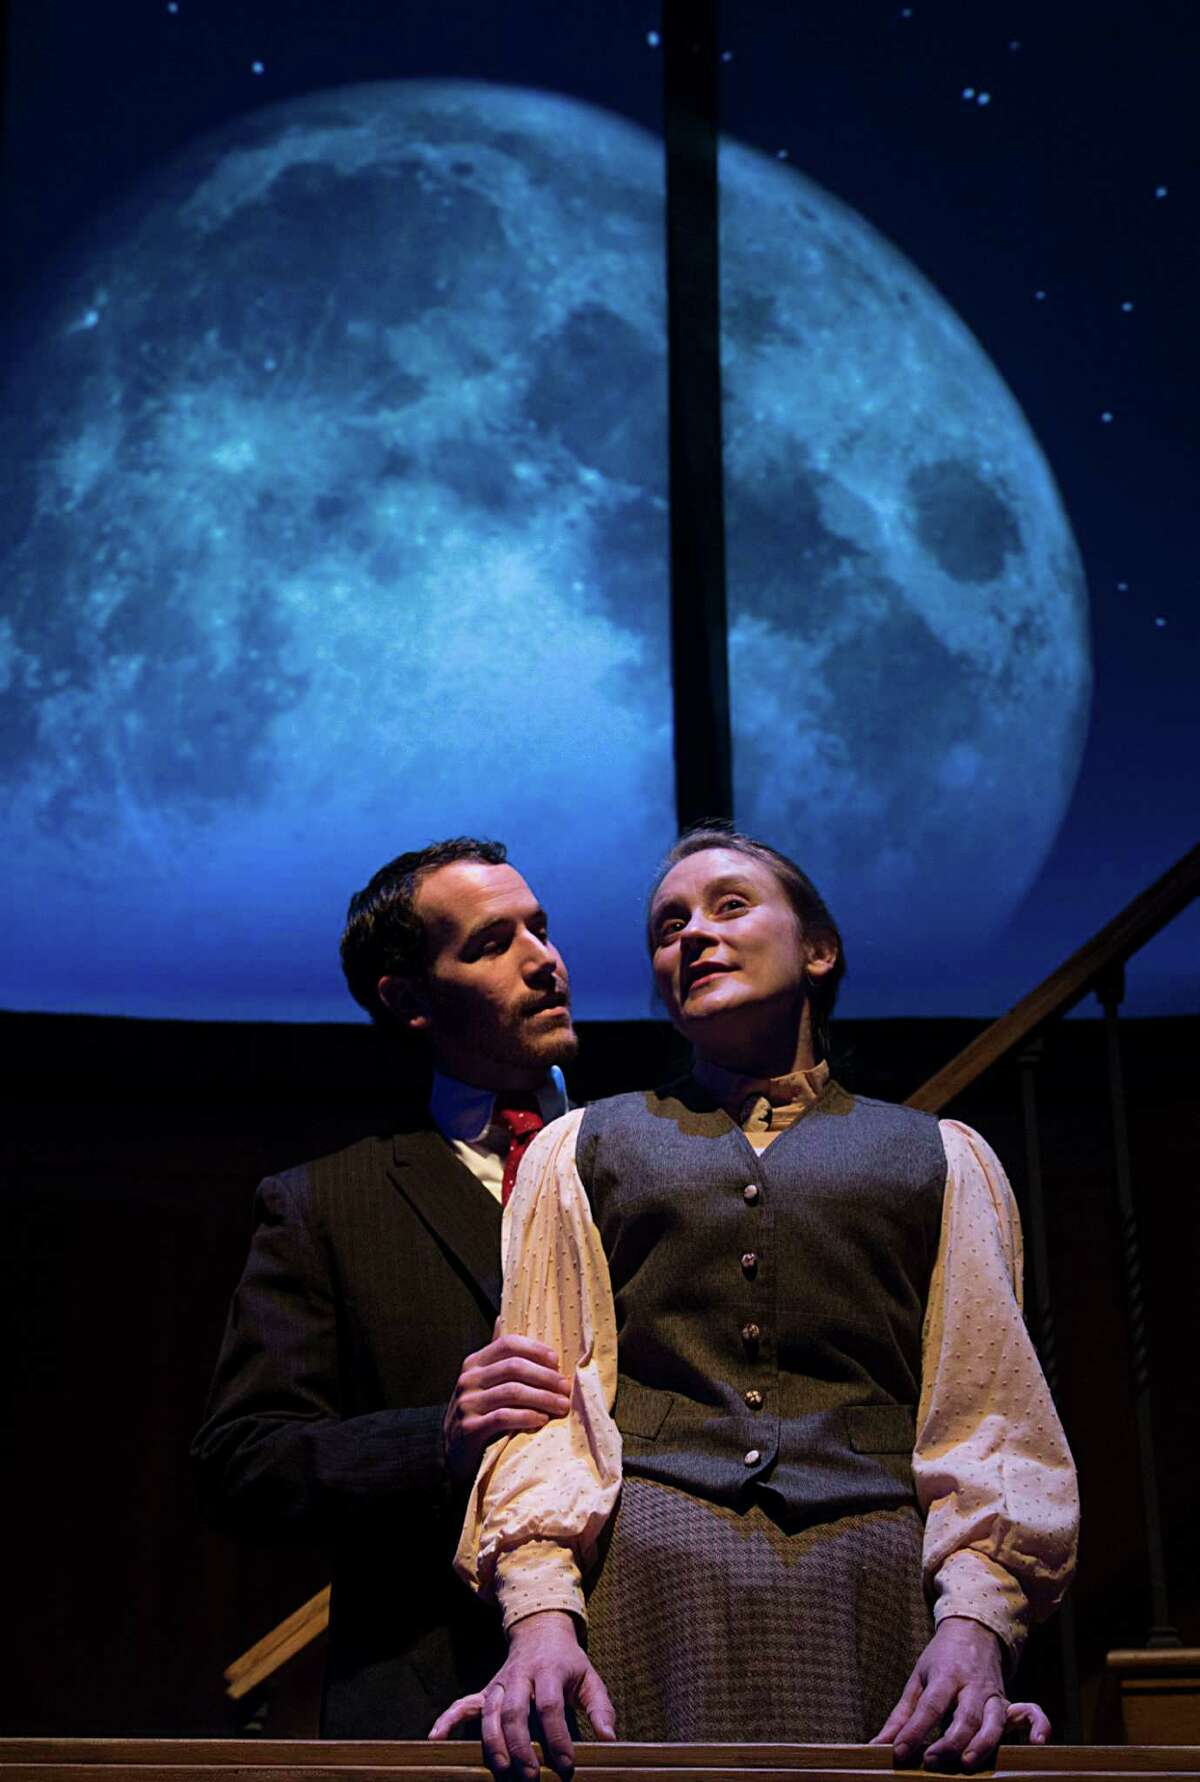 """James Monaghan left, as """"Peter Shaw"""", and Shannon Emerick right, as """"Henrietta Leavitt"""" during Main Street Theater's production of the play Silent Sky Thursday, Oct. 29, 2015, in Houston. ( James Nielsen / Houston Chronicle )"""